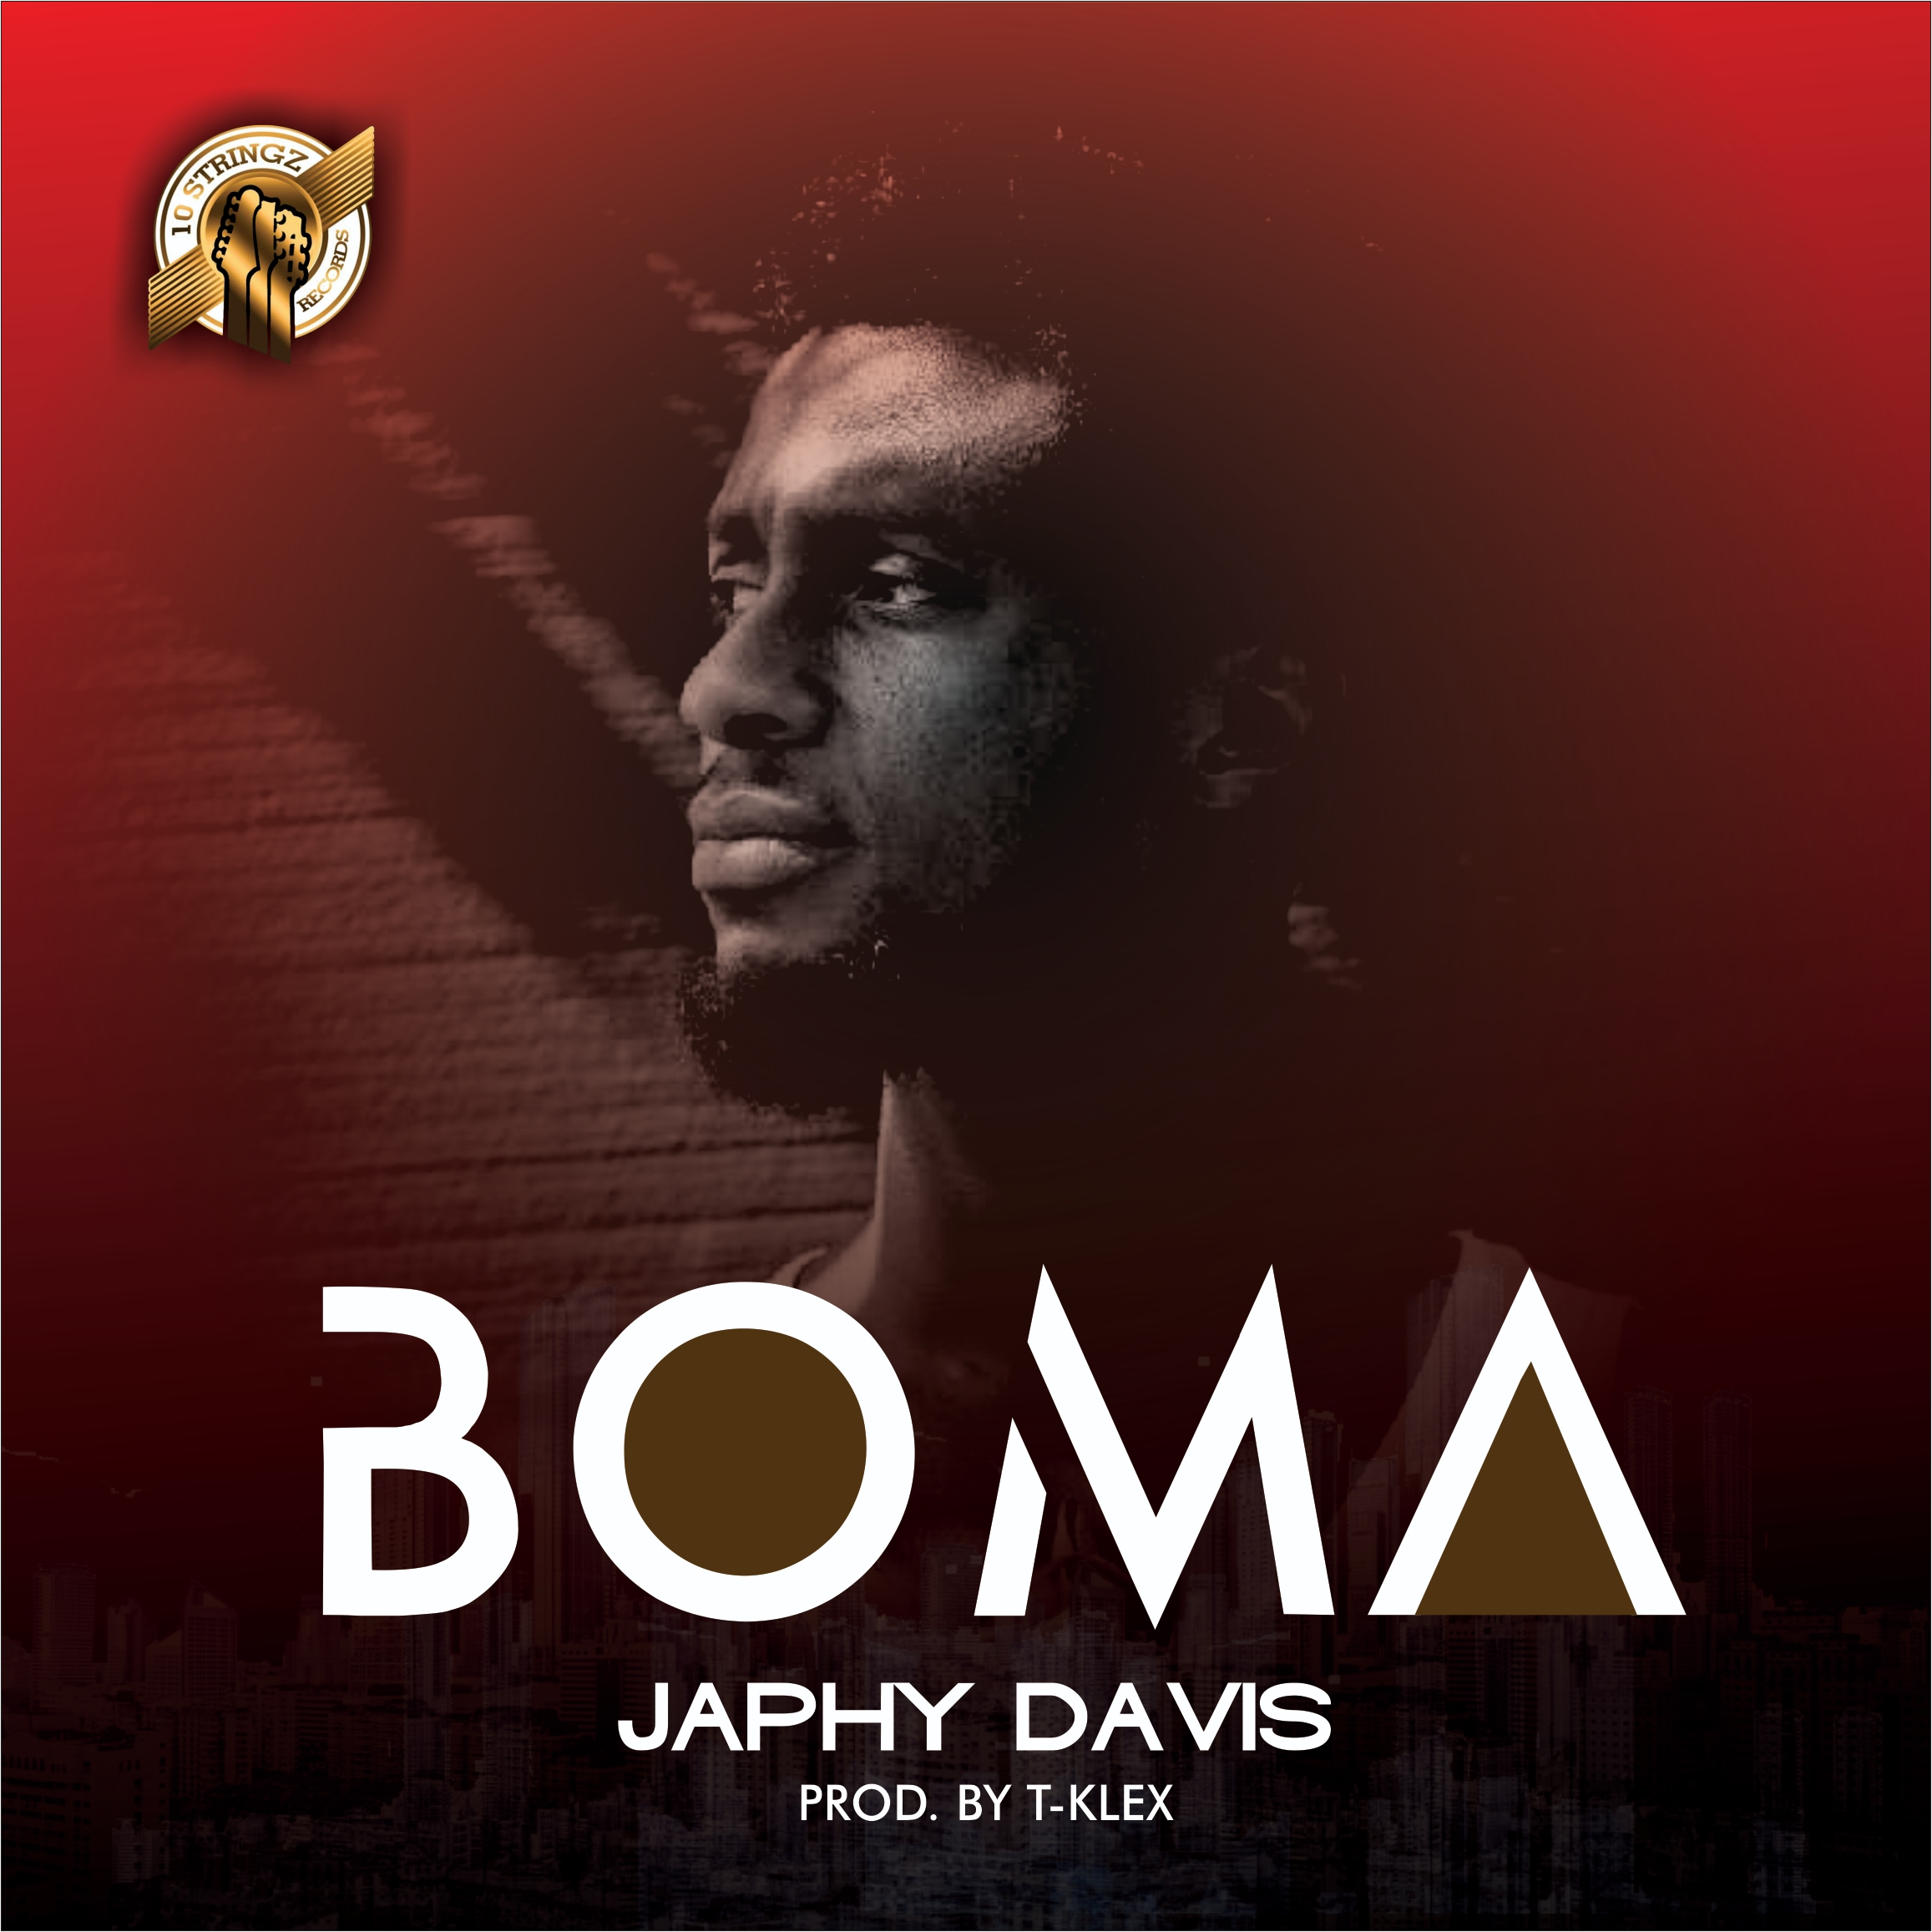 Japhy Davis Boma Video